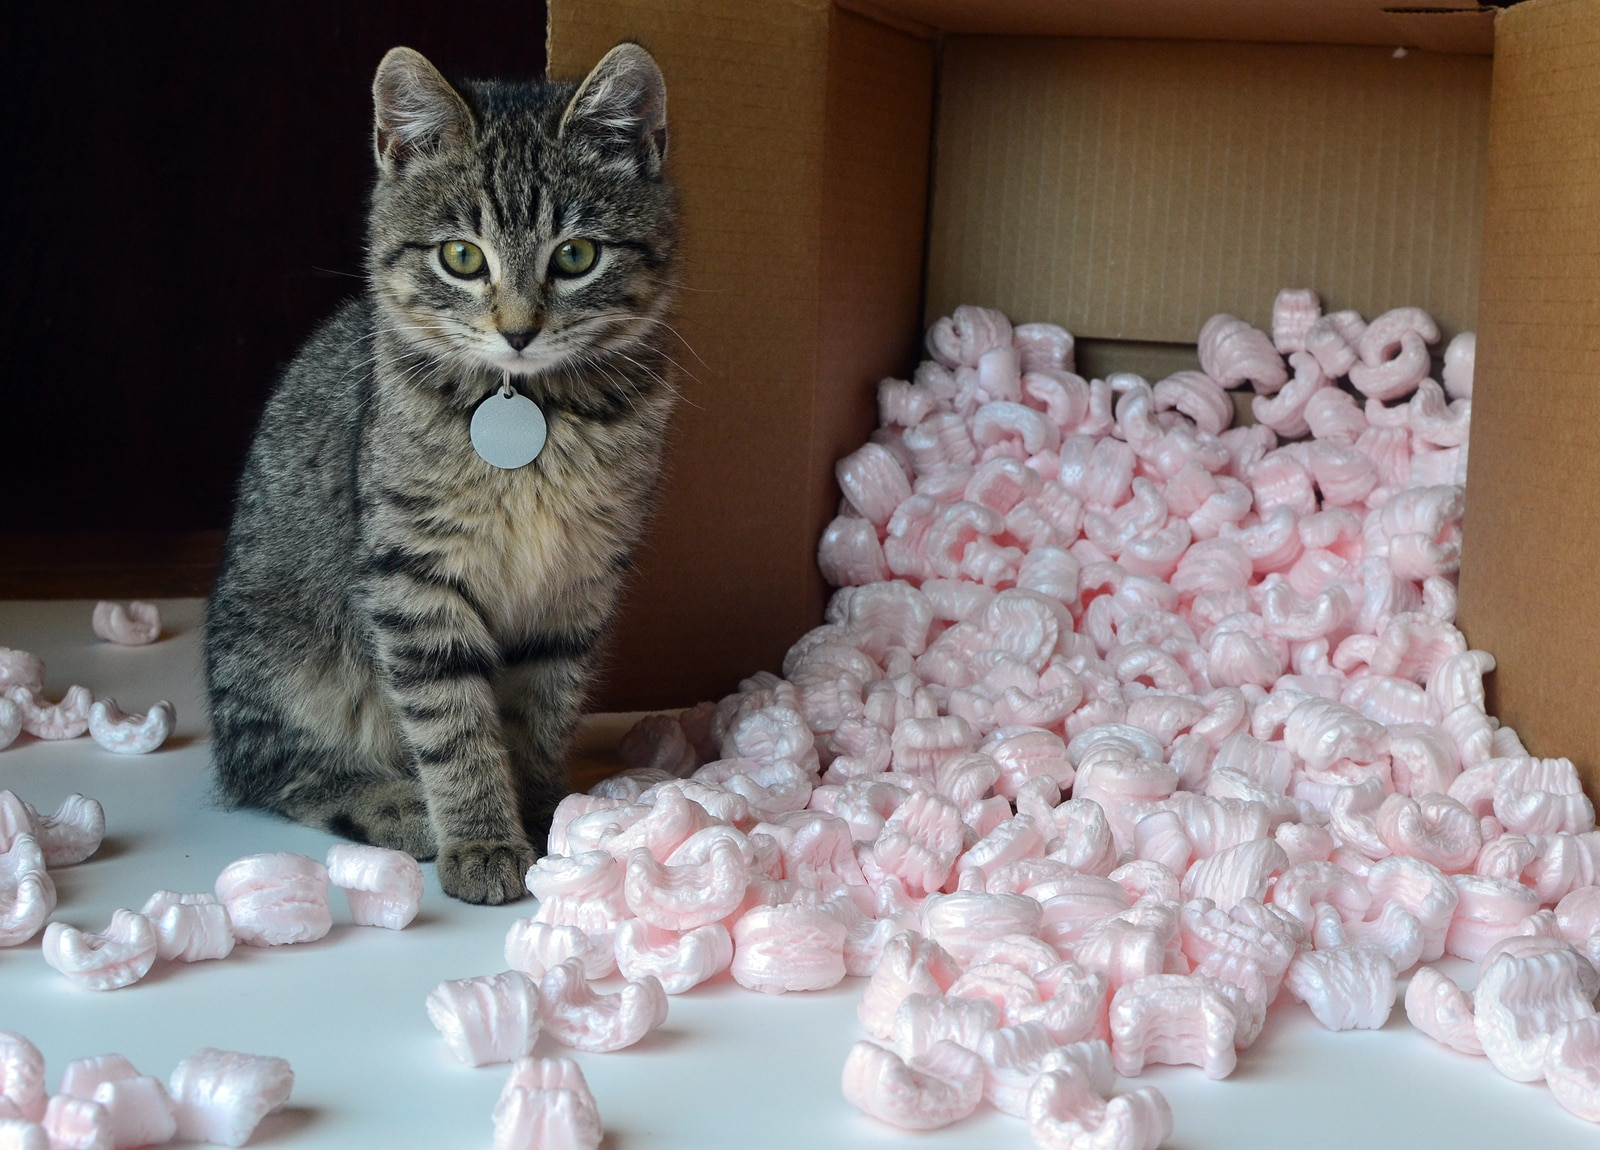 Small tabby cat kitten in spilled box of pink packing peanuts